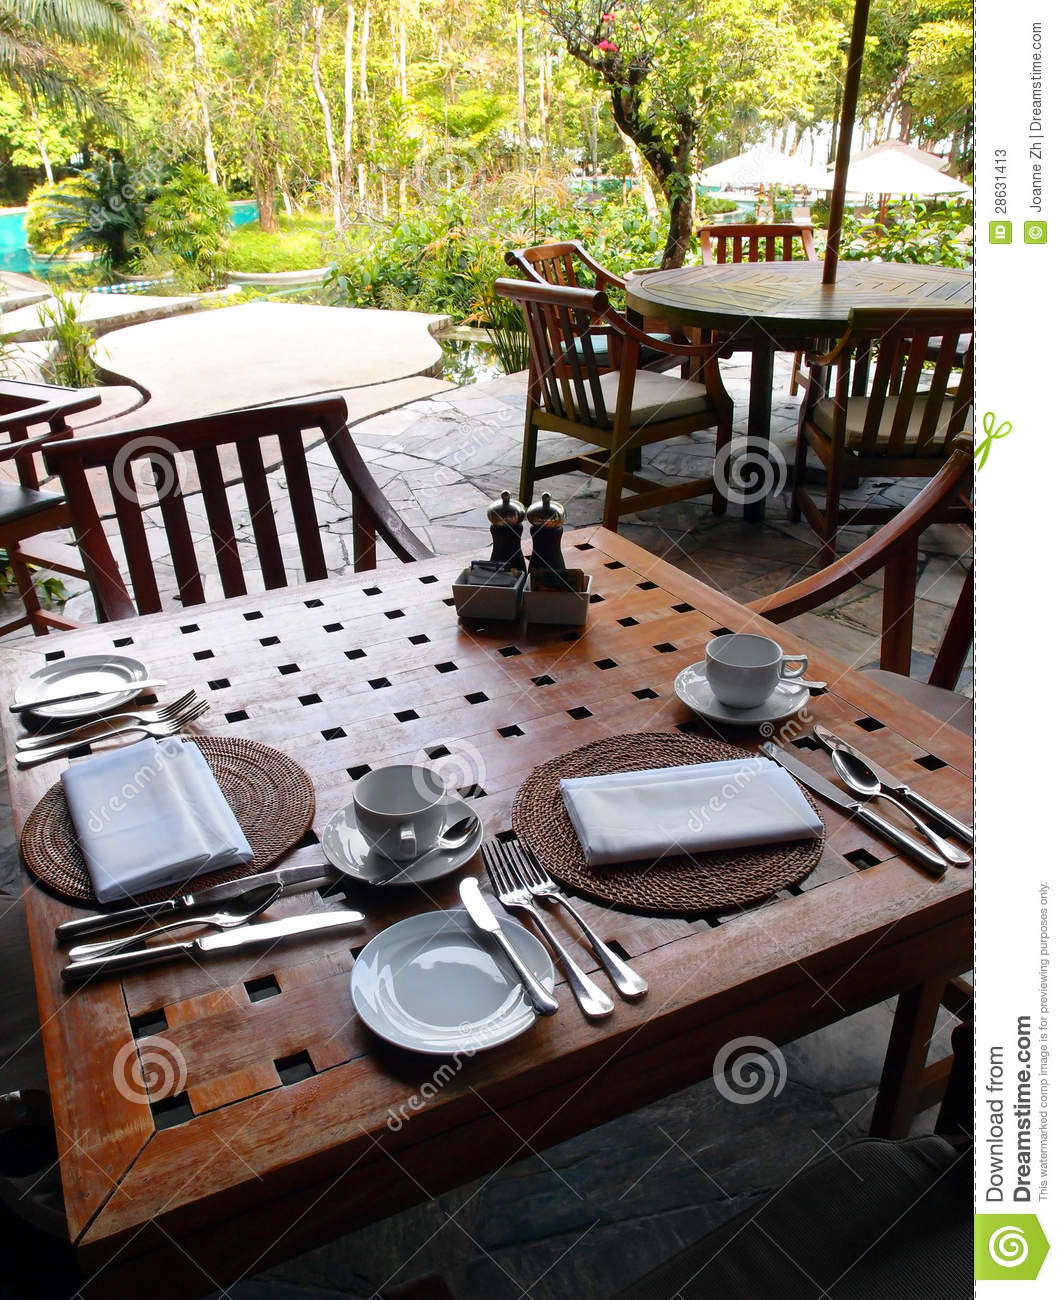 Outdoor dining restaurant, table cutlery settings